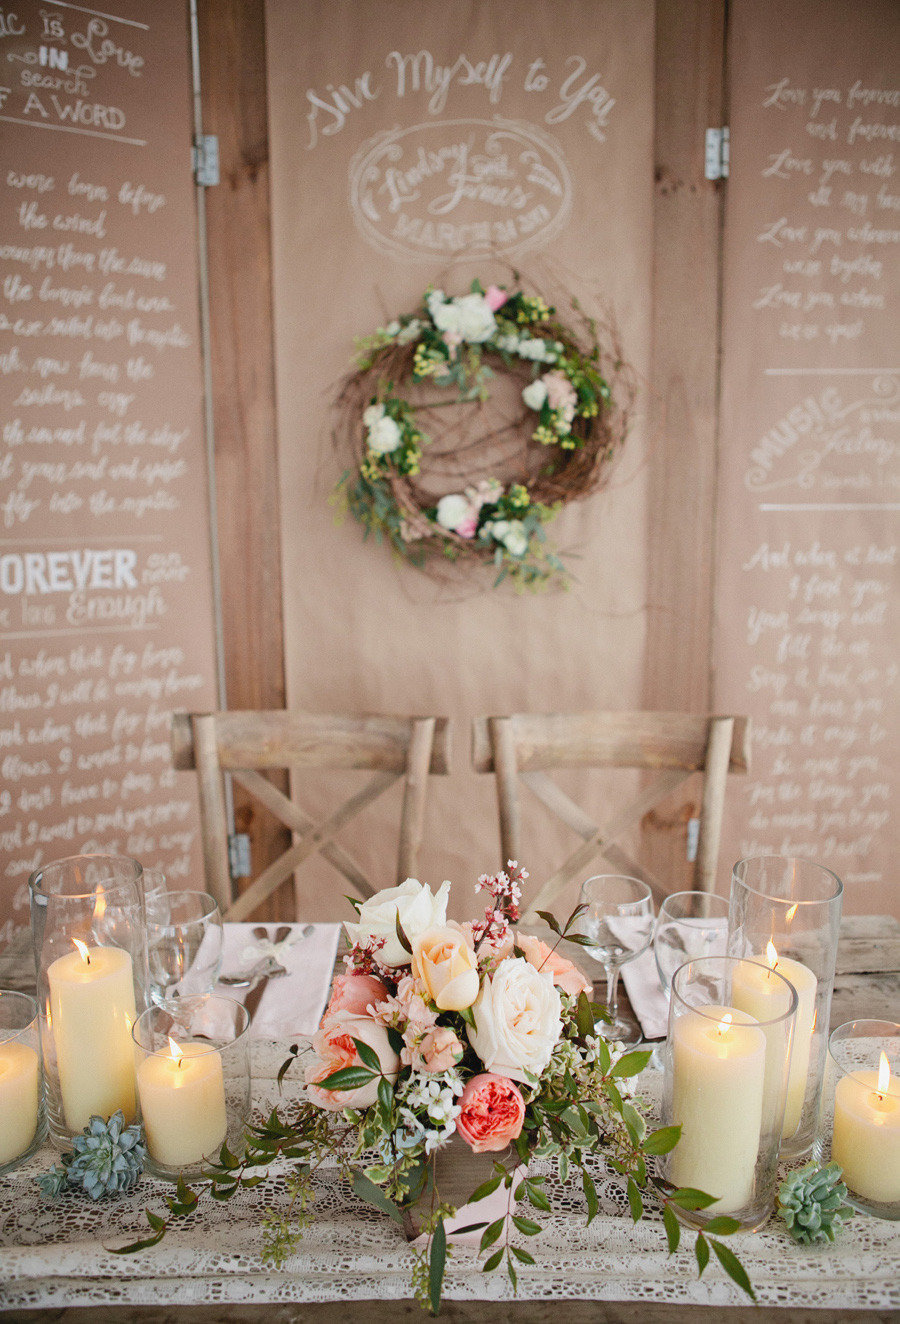 Rustic elegance wedding reception sign tan and white